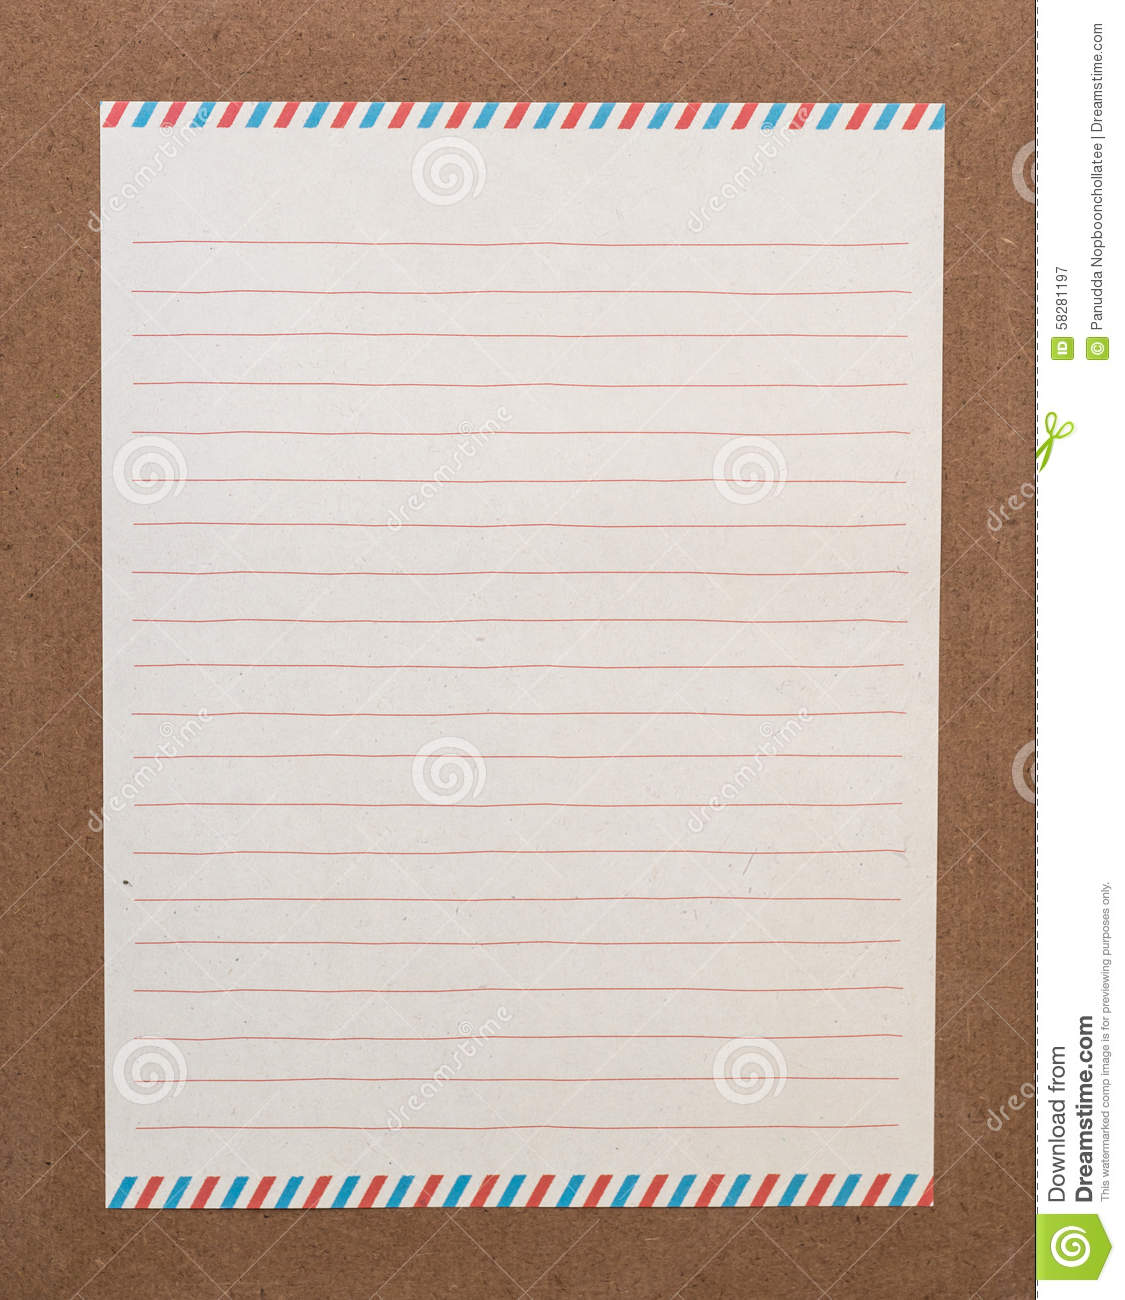 Letter Paper Stock Photo - Image: 58281197